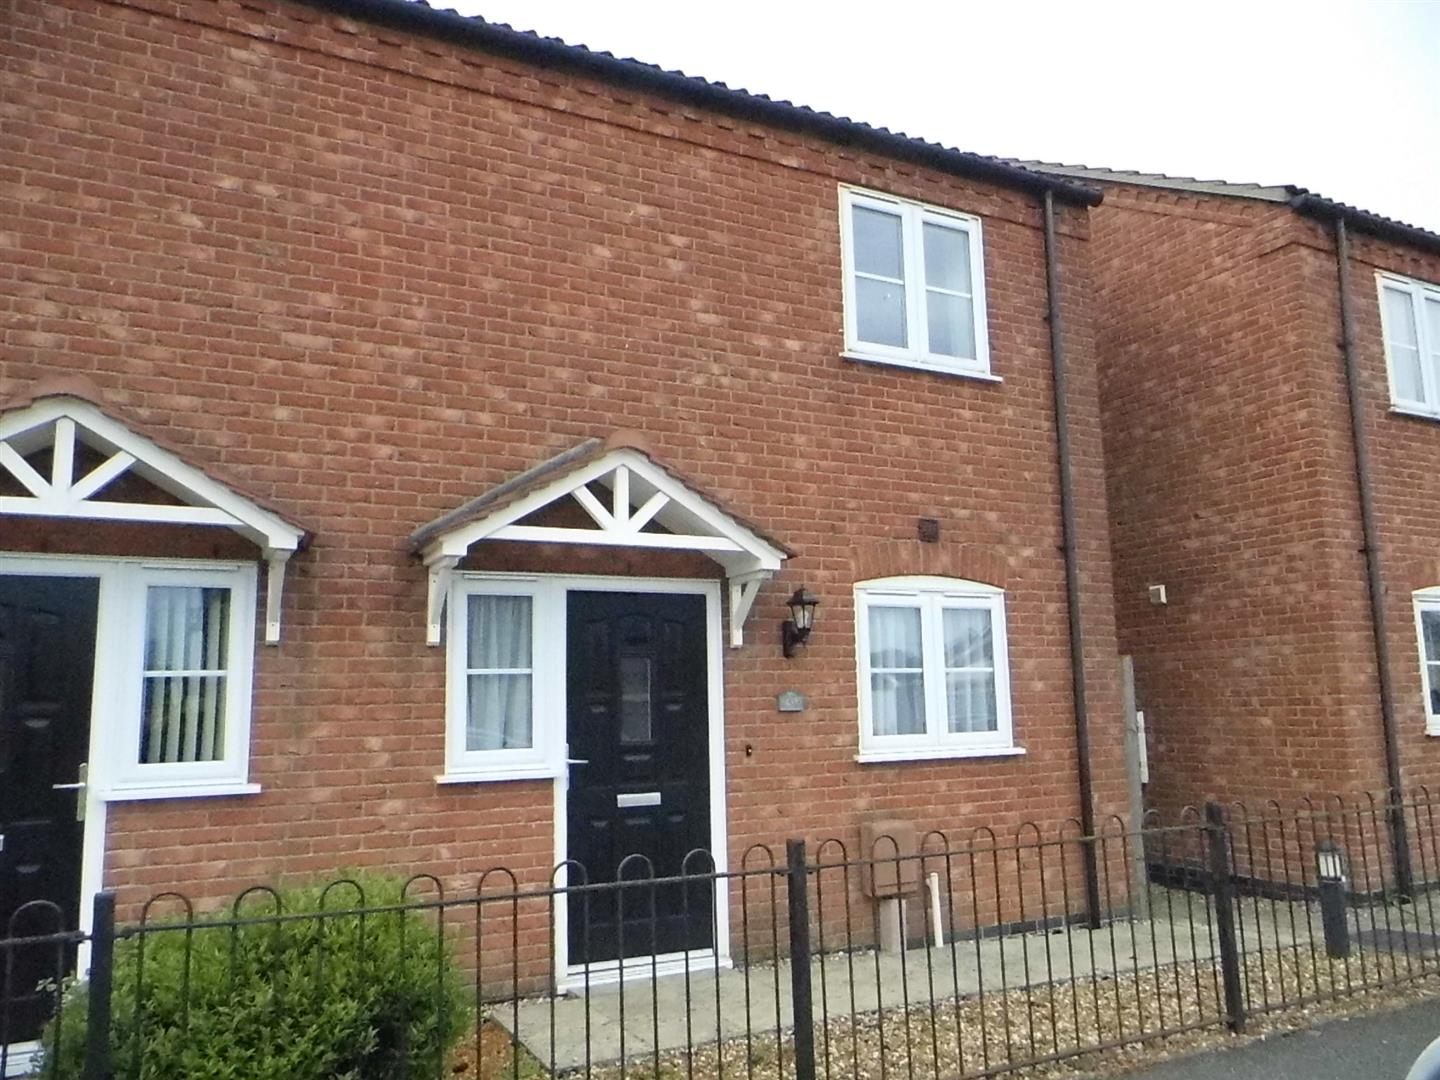 3 bed house to rent in Chapel Road, King's Lynn, PE34